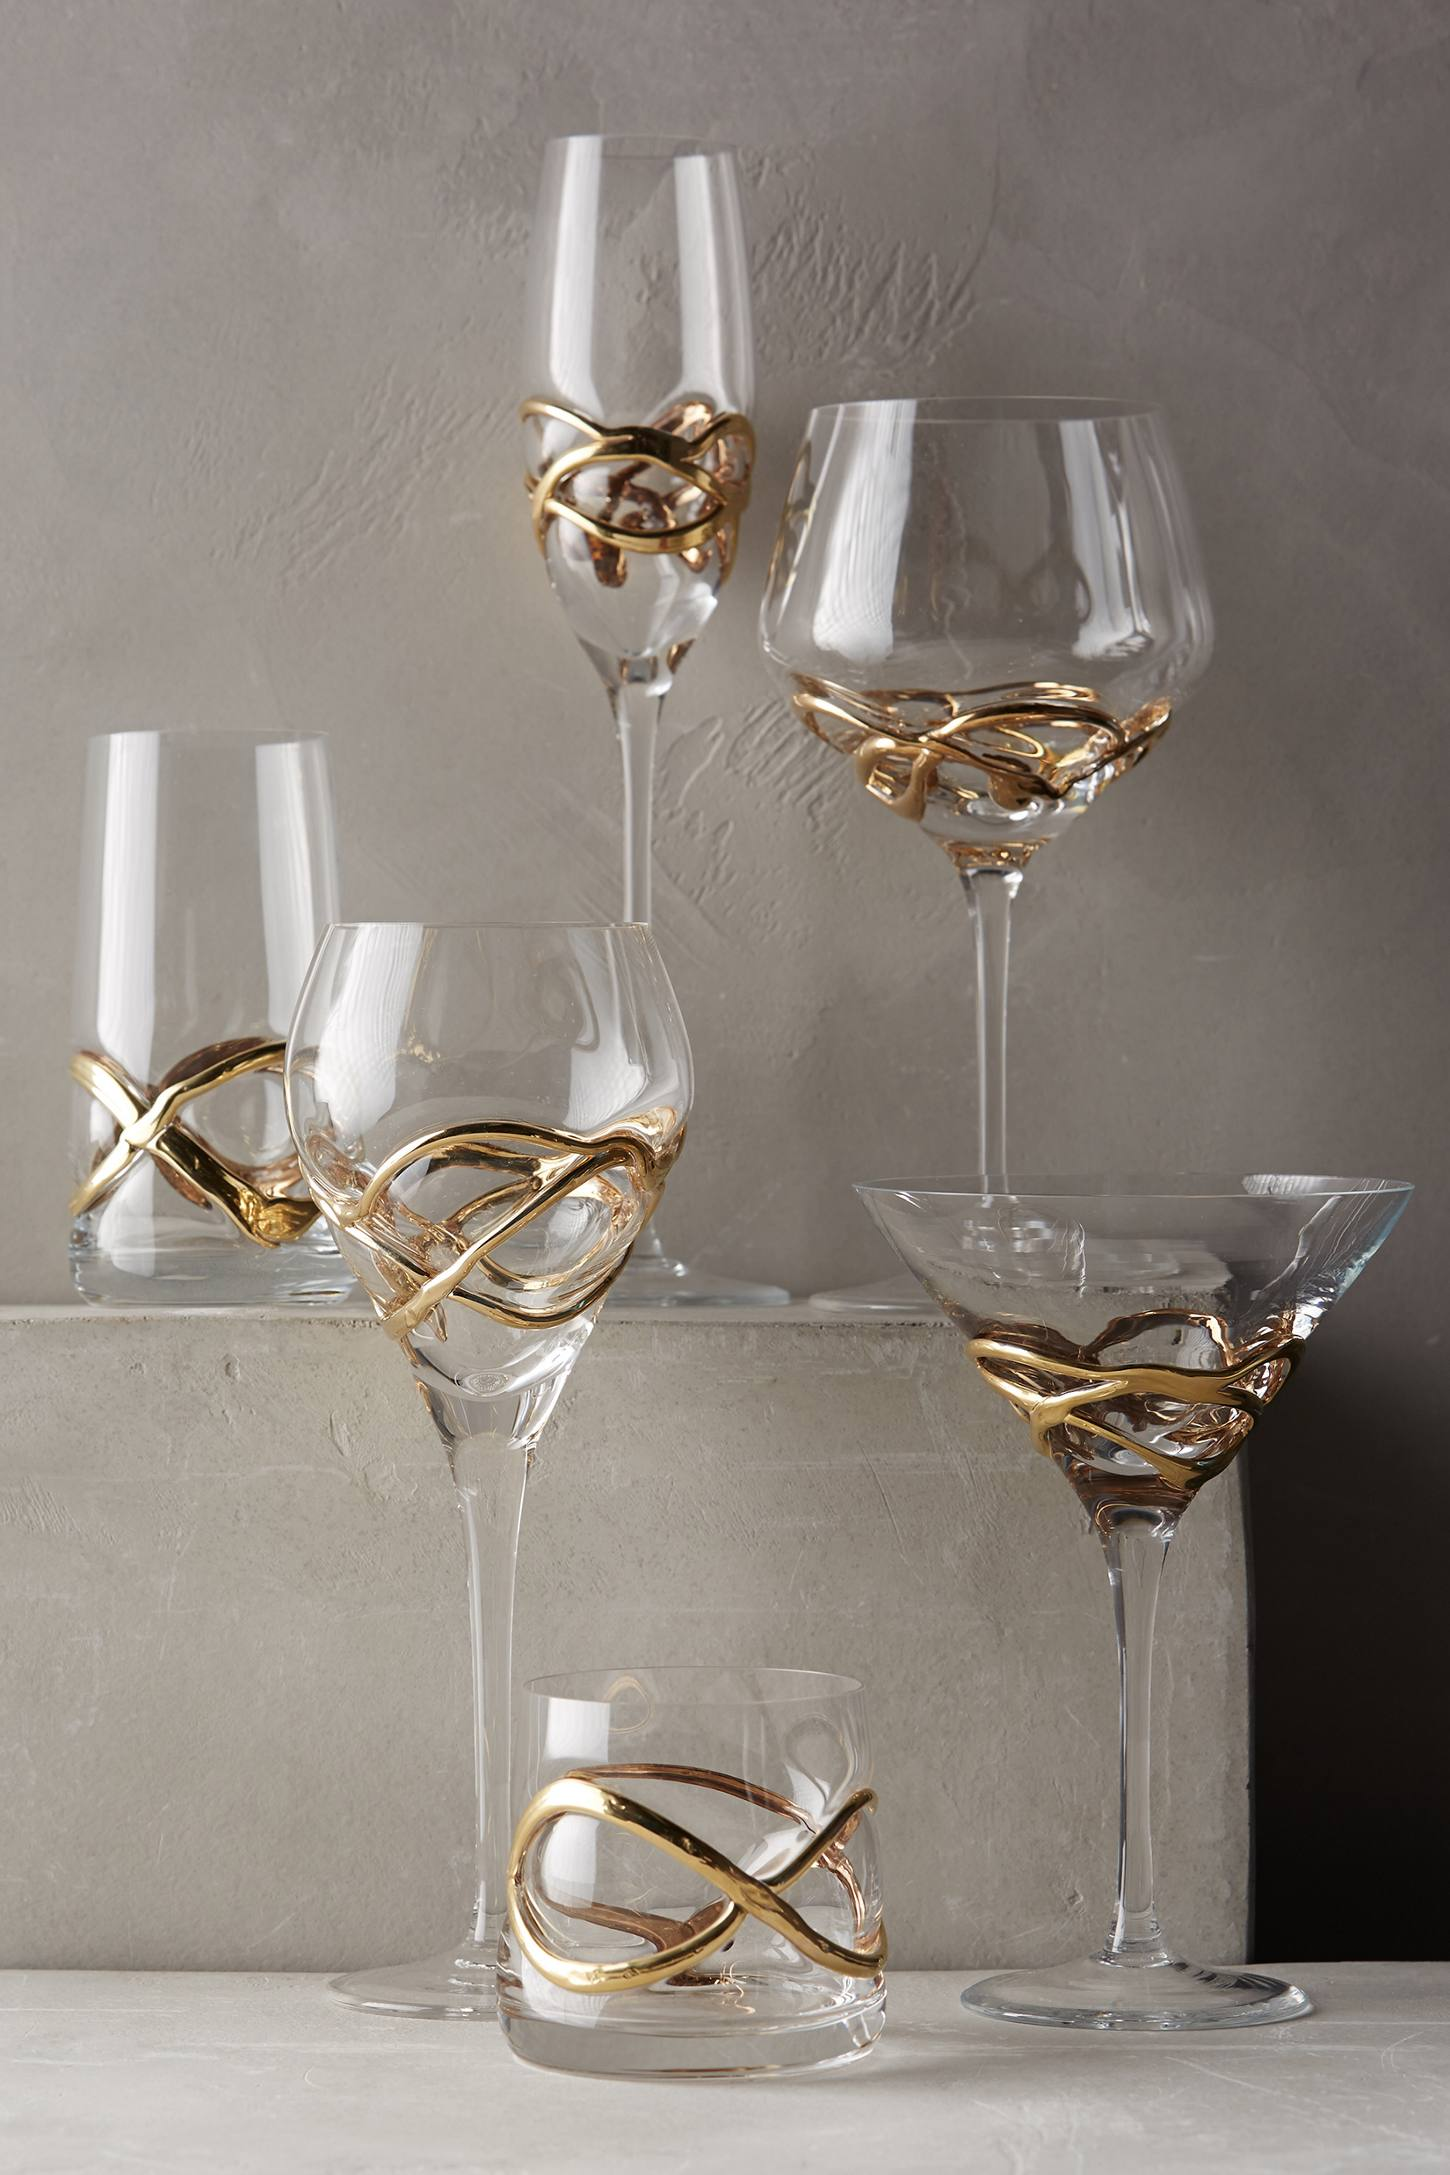 Slide View: 1: Glimmer-Wrapped White Wine Glass